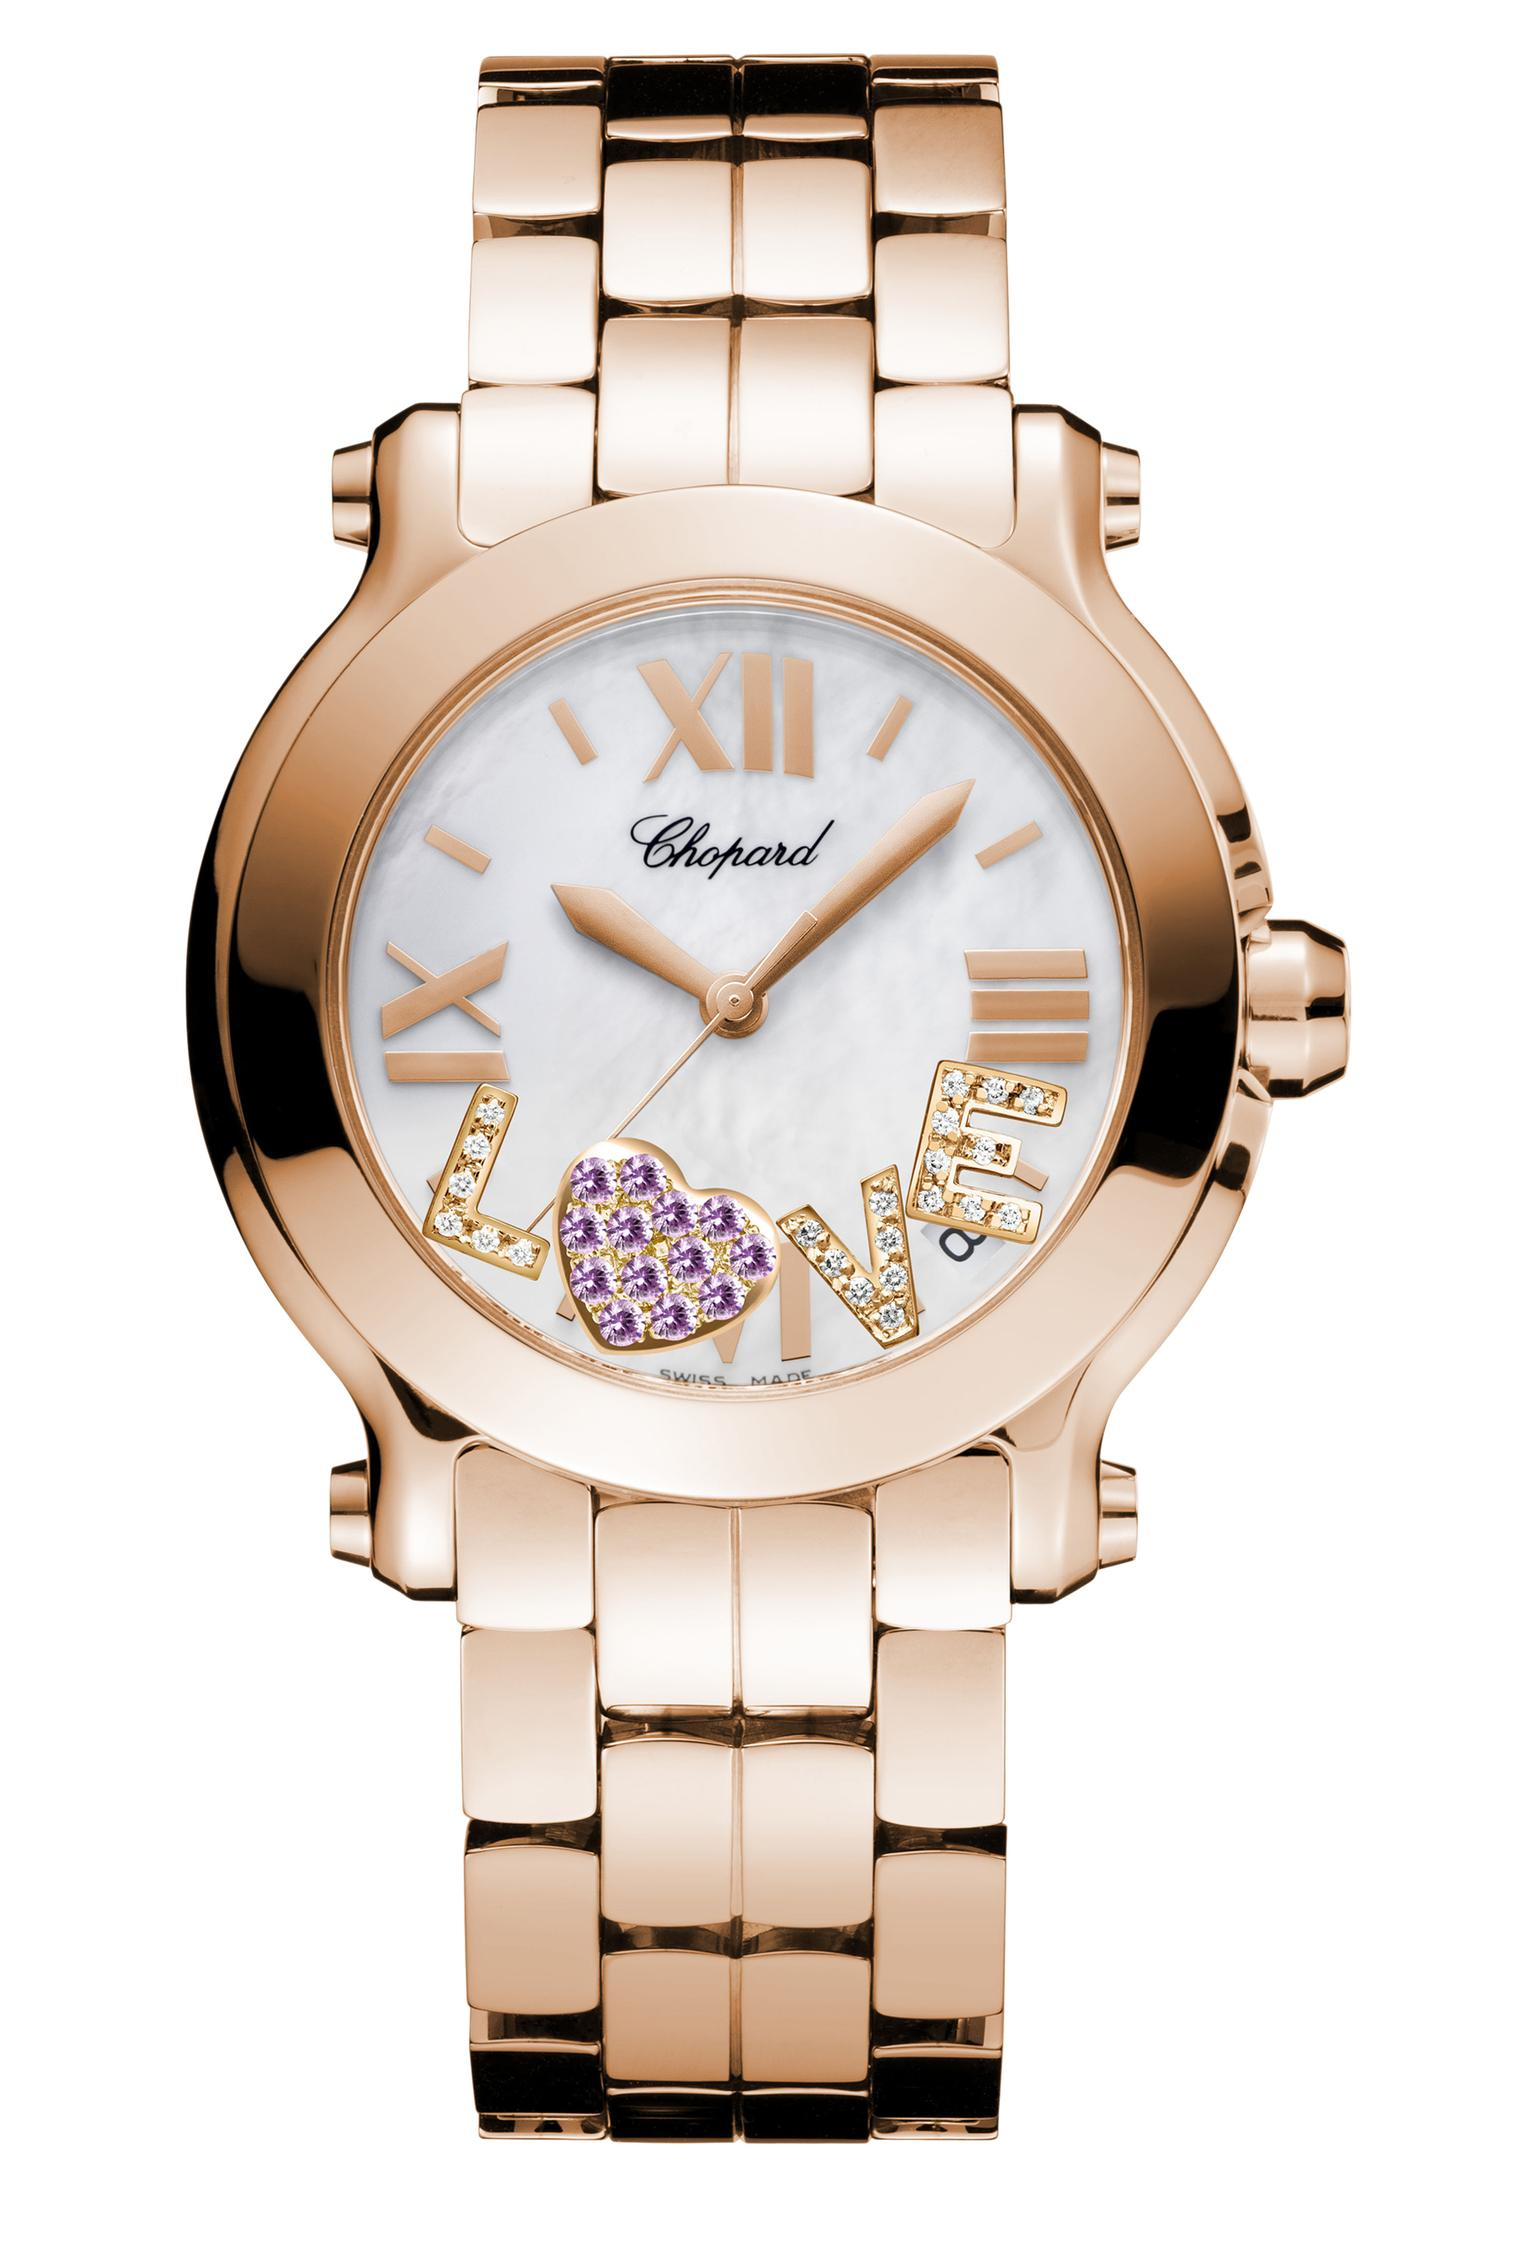 Chopard My Happy watch_20130619_Zoom